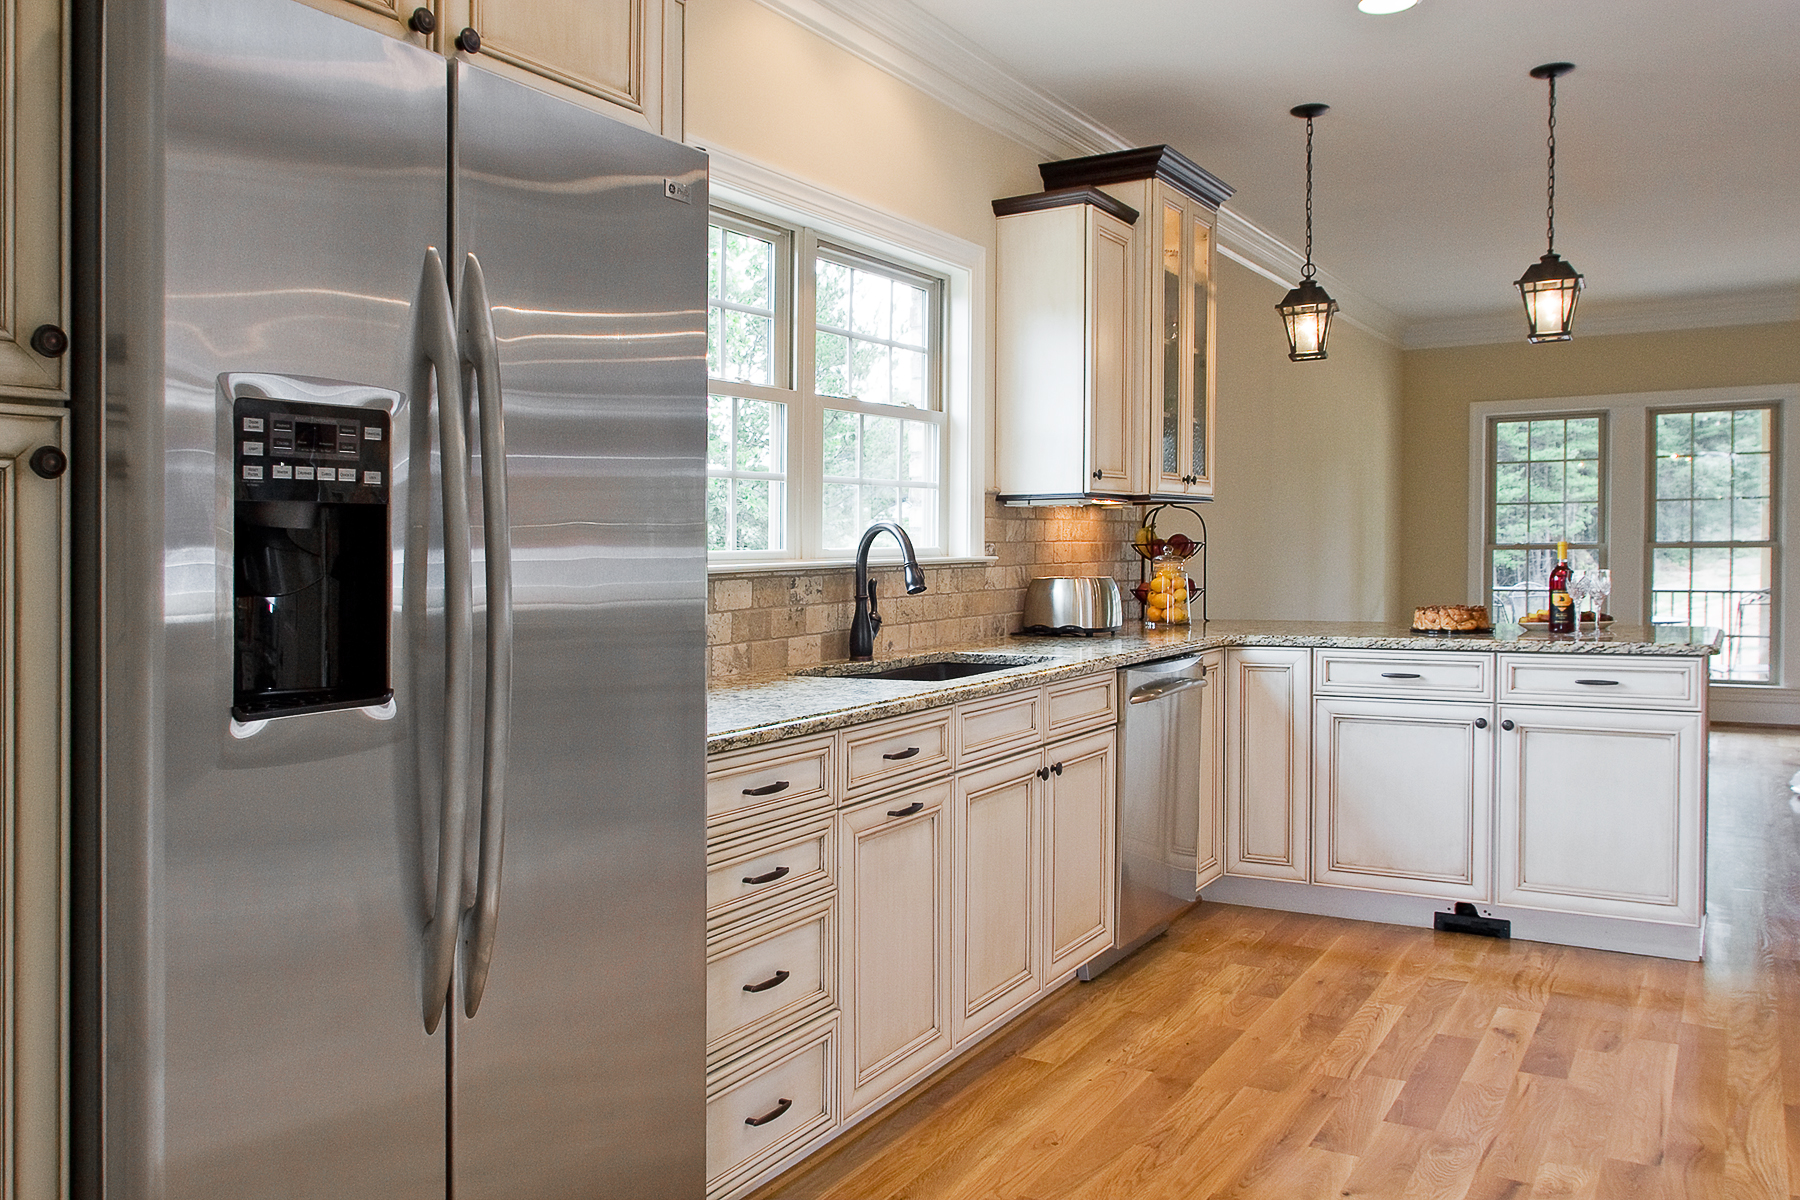 Kitchen Design Ideas White Cabinets white kitchen cabinets with stainless steel appliances 25+ best